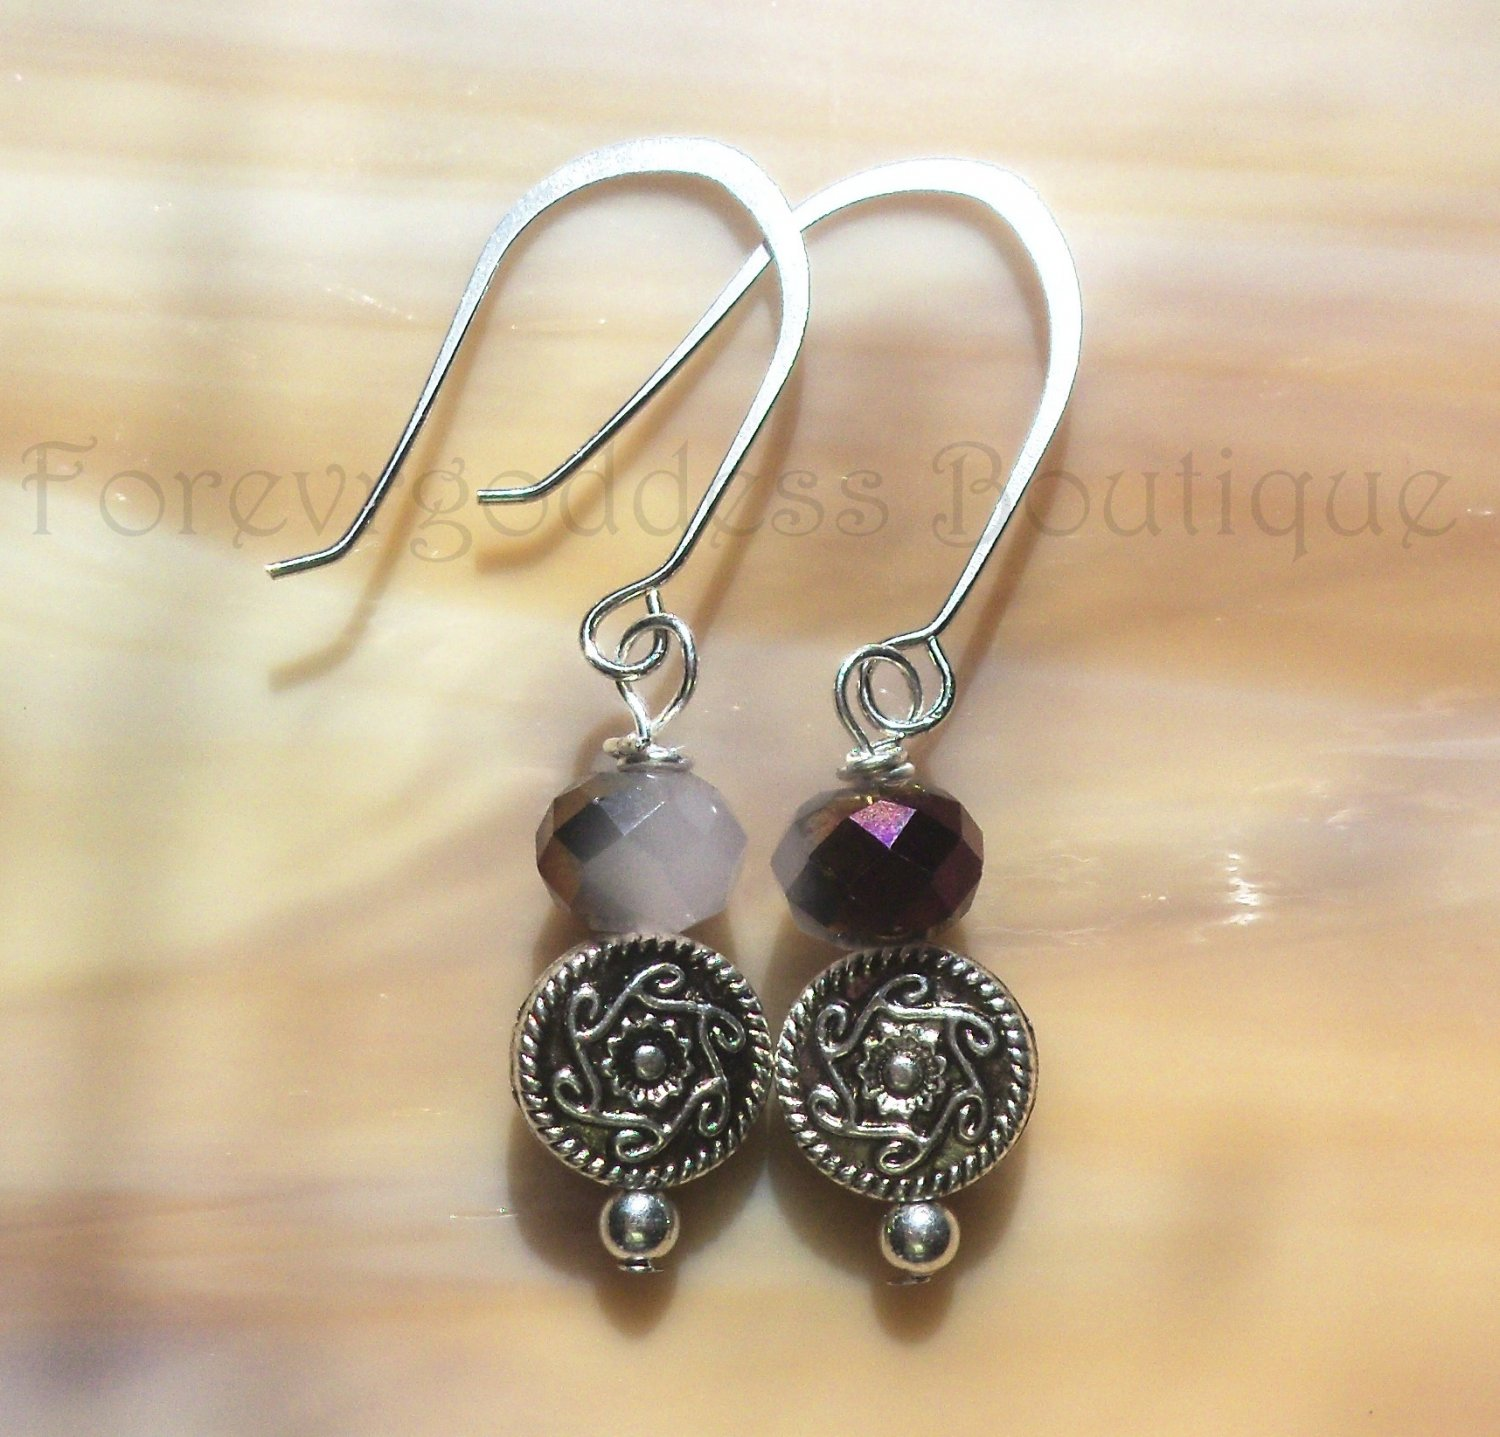 Burnt Purple crystals with Indian swirls earrings